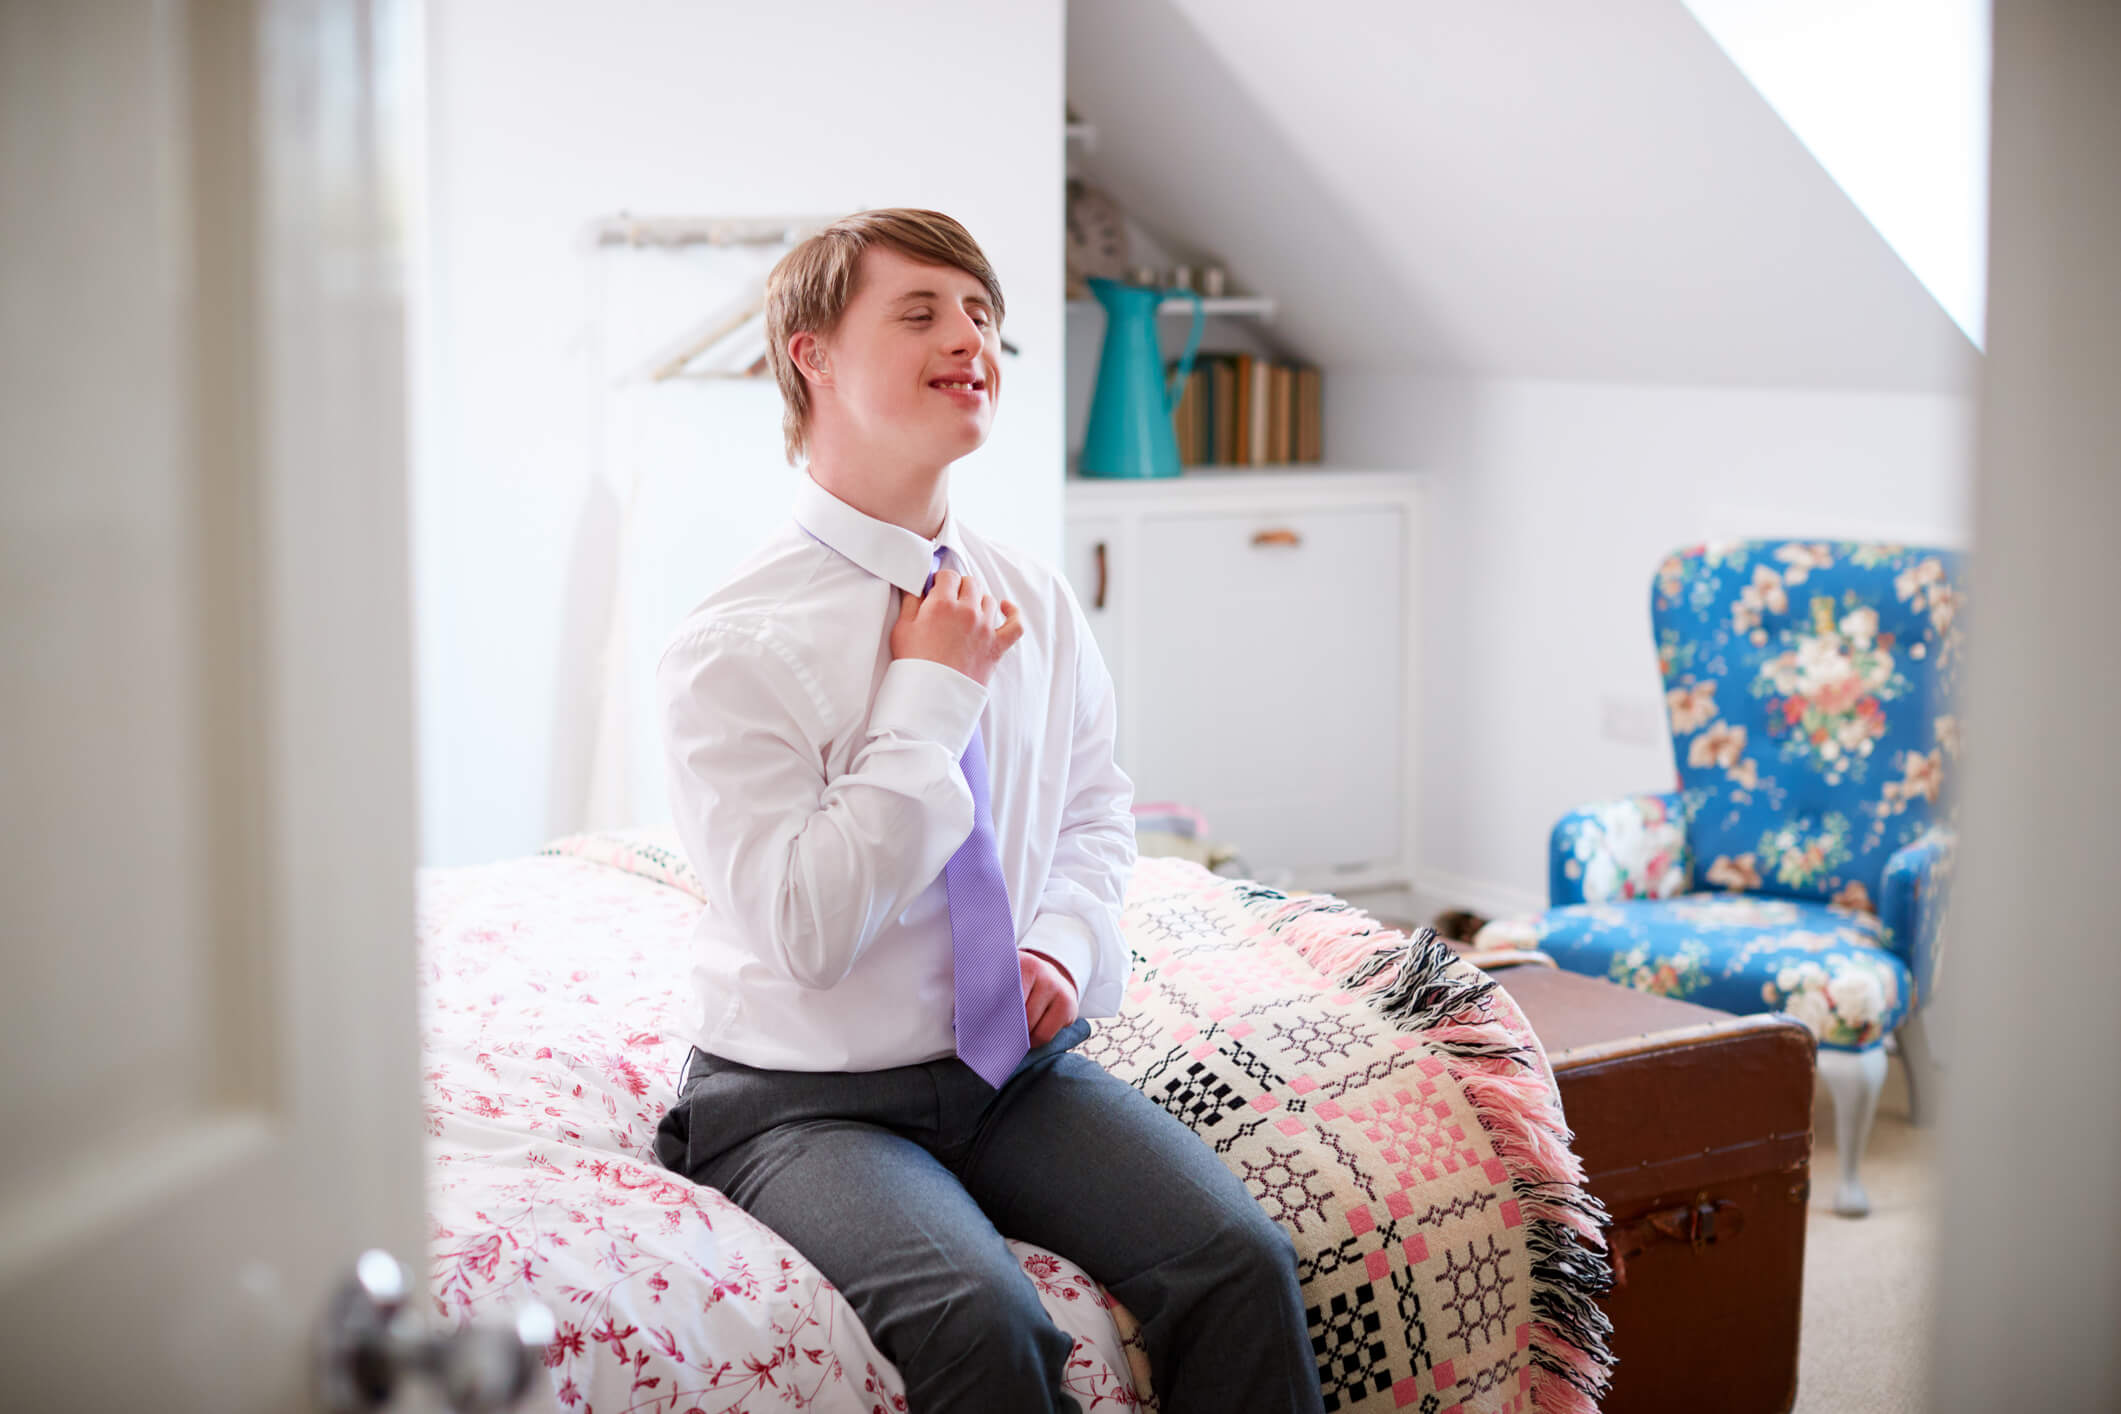 Young man with Down Syndrome, getting ready for work.